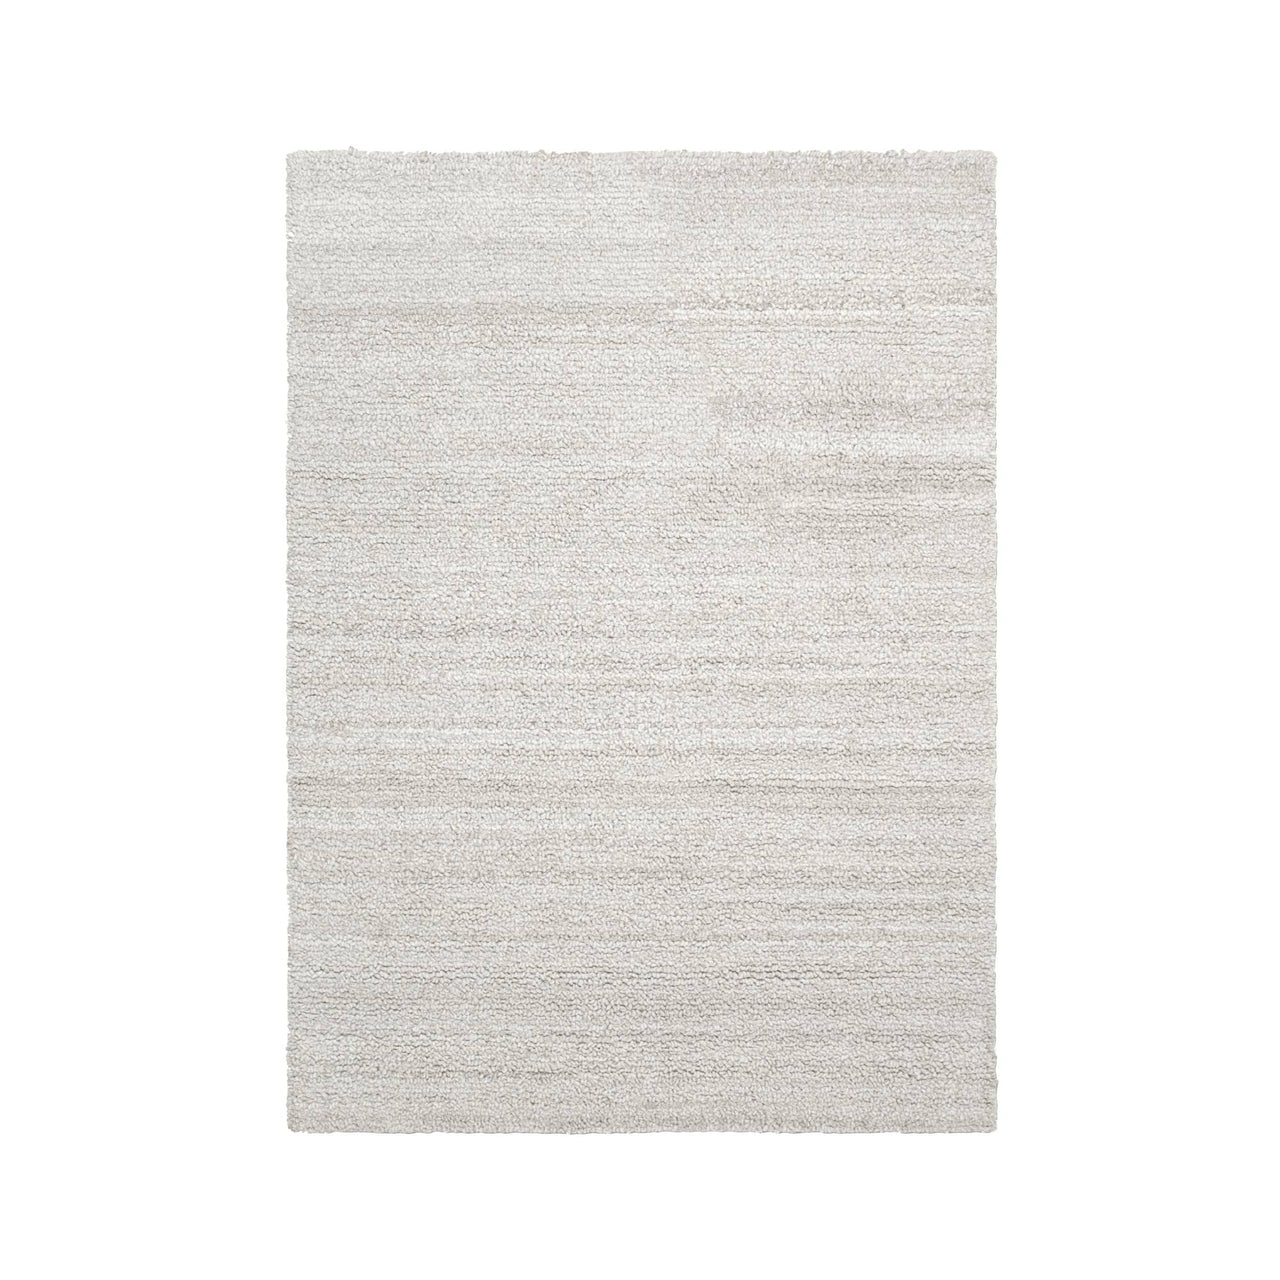 Ease Loop Rug: 140 x 200 mm